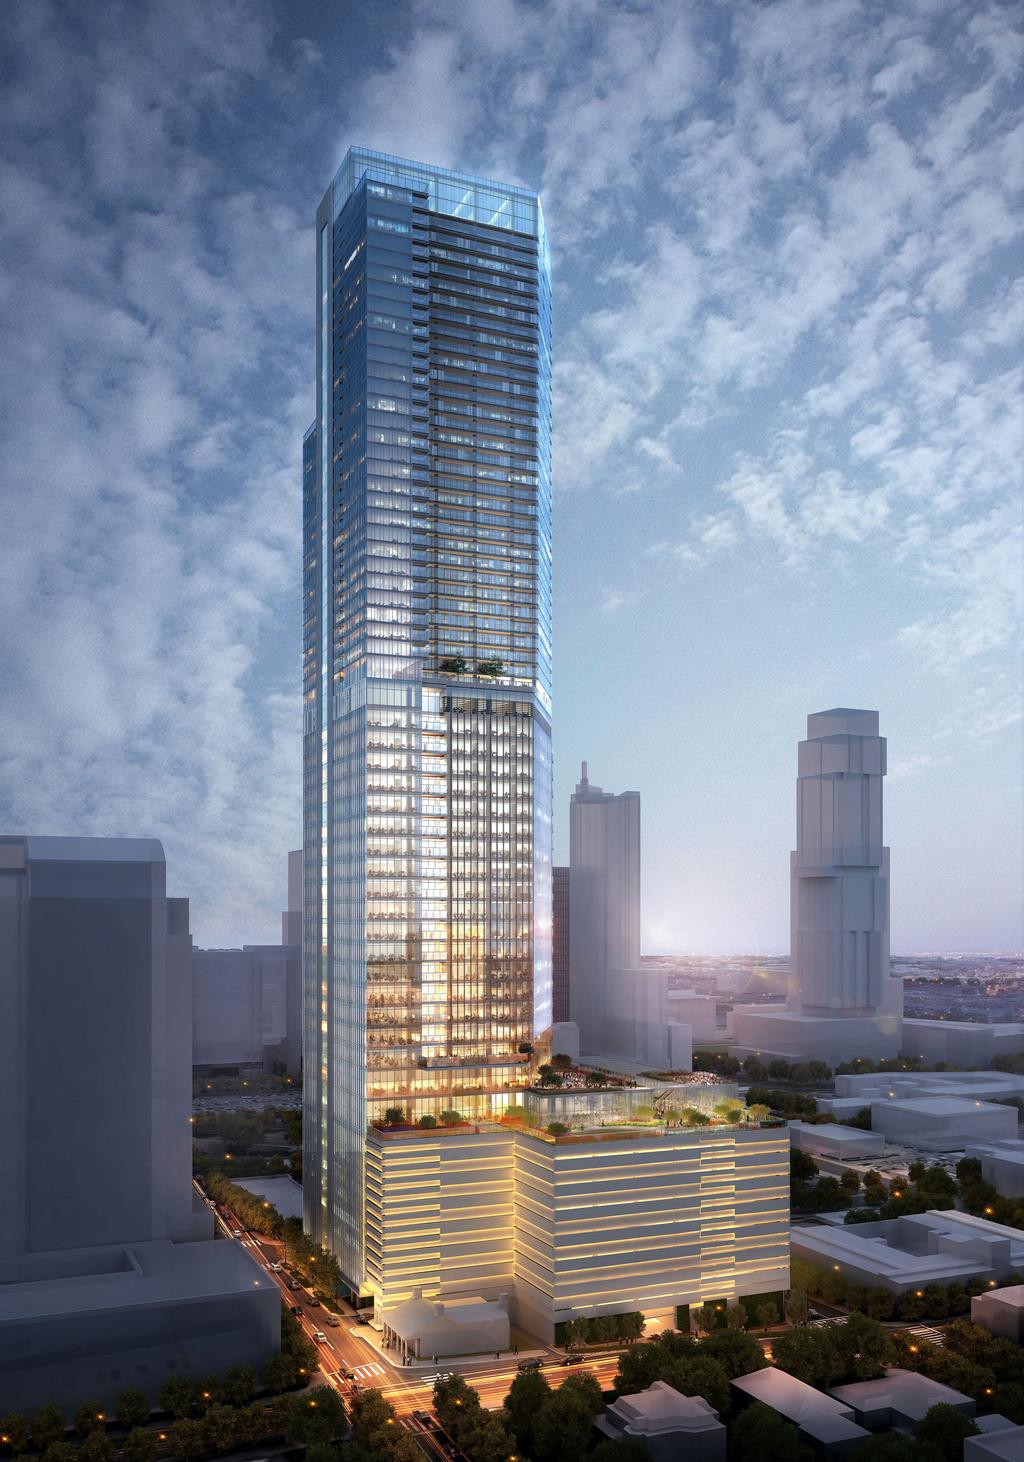 62 Story Tower Will Be The Tallest Building In Austin